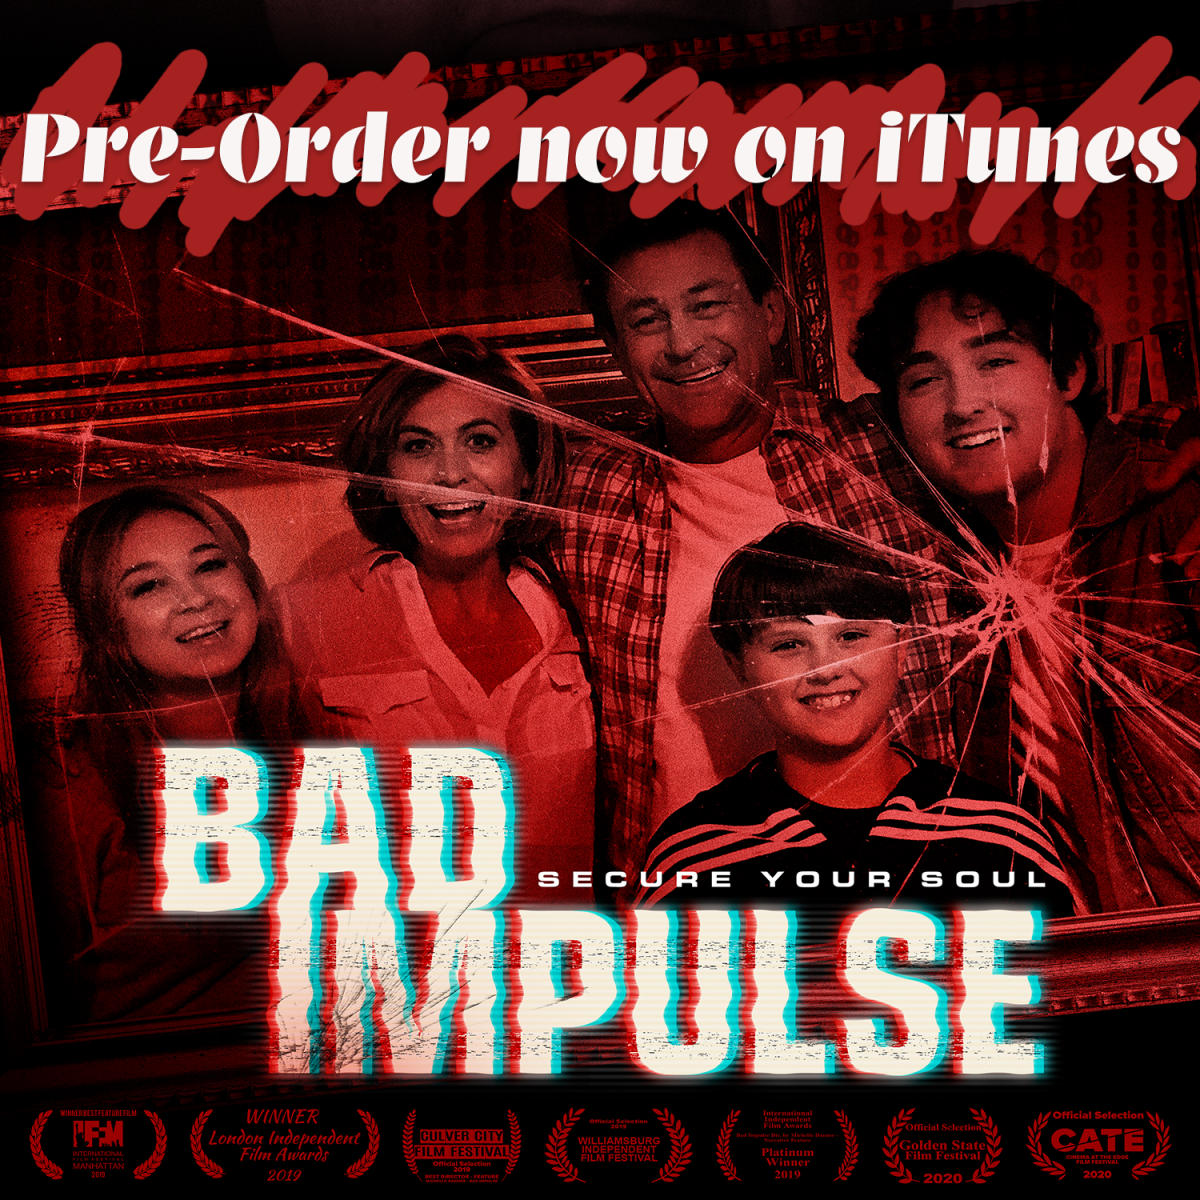 official release of Bad Impulse